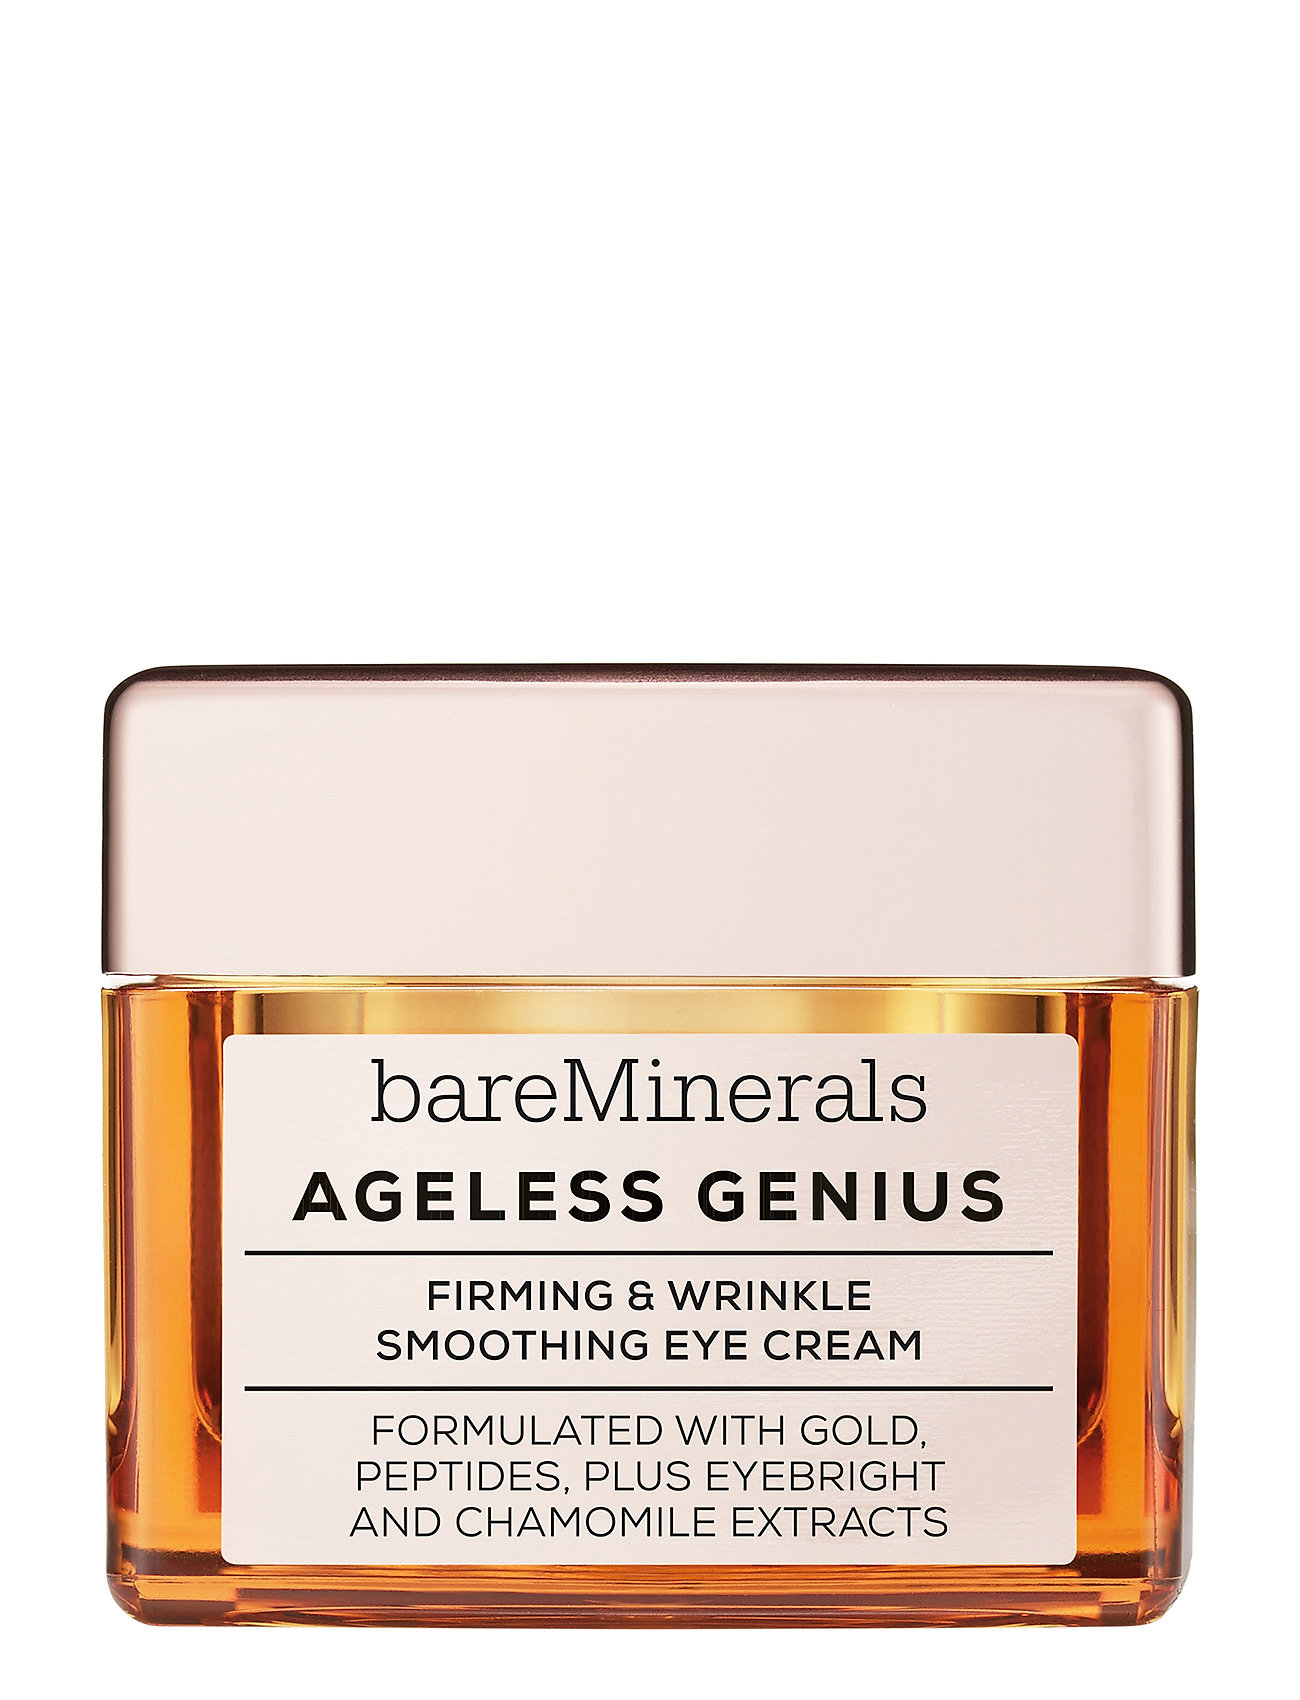 bareMinerals Ageless Genius Firming & Wrinkle Smoothing Eye Cream - CLEAR